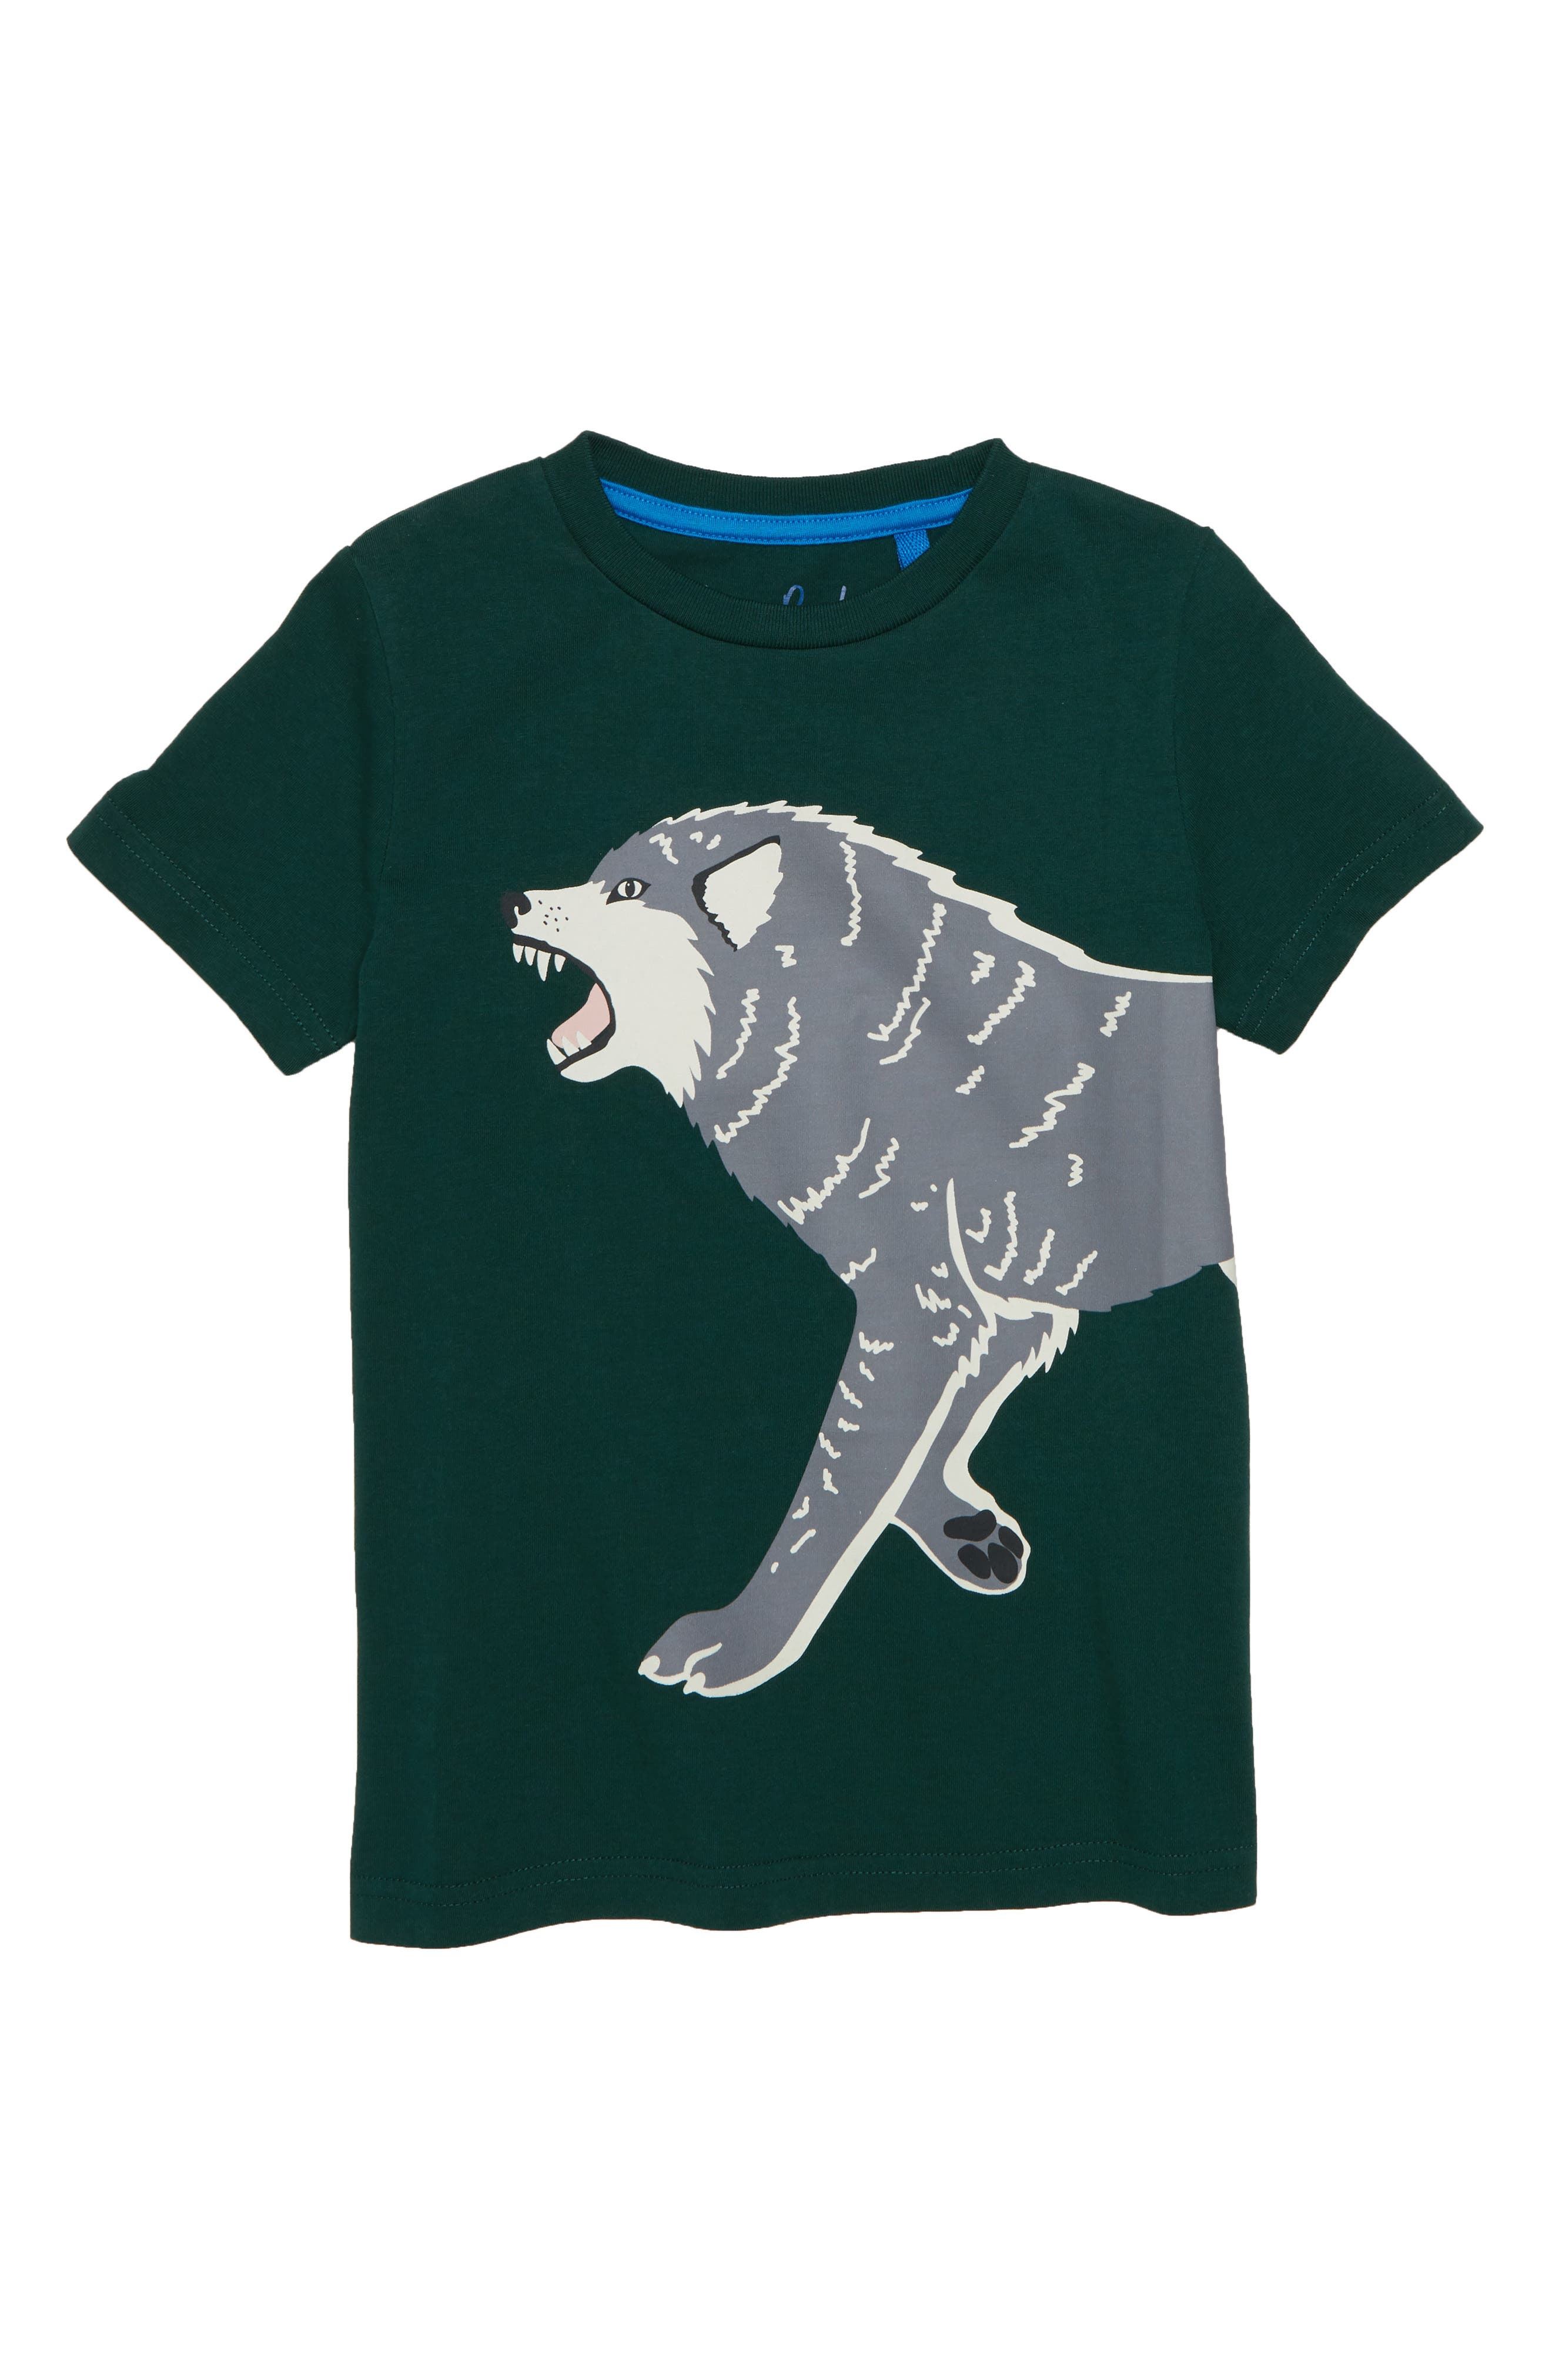 Glow in the Dark Wolf T-Shirt,                             Main thumbnail 1, color,                             304